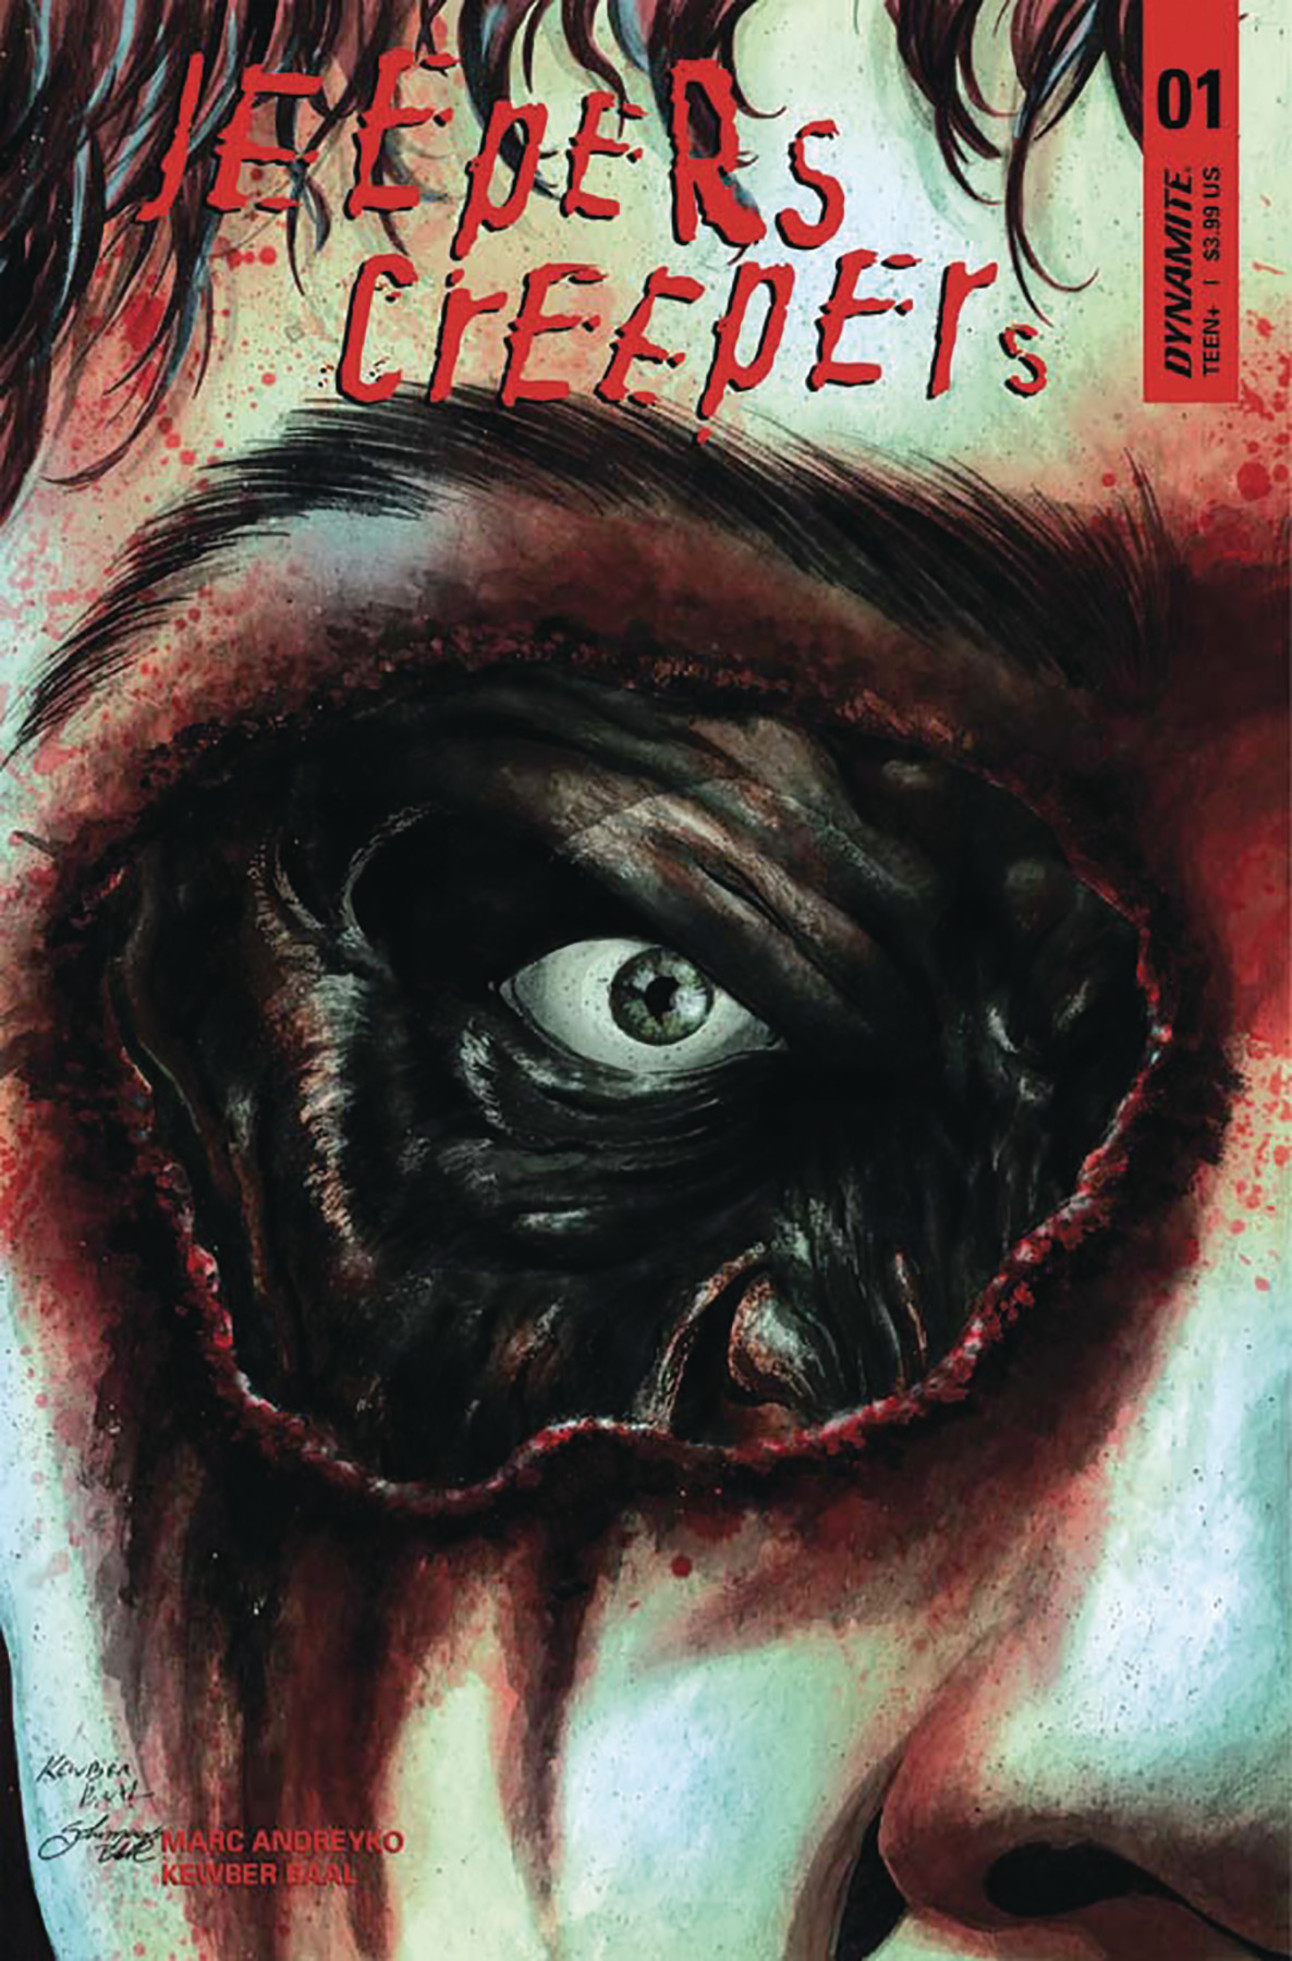 dynamite_jeepers_creepers_1_cover.jpg